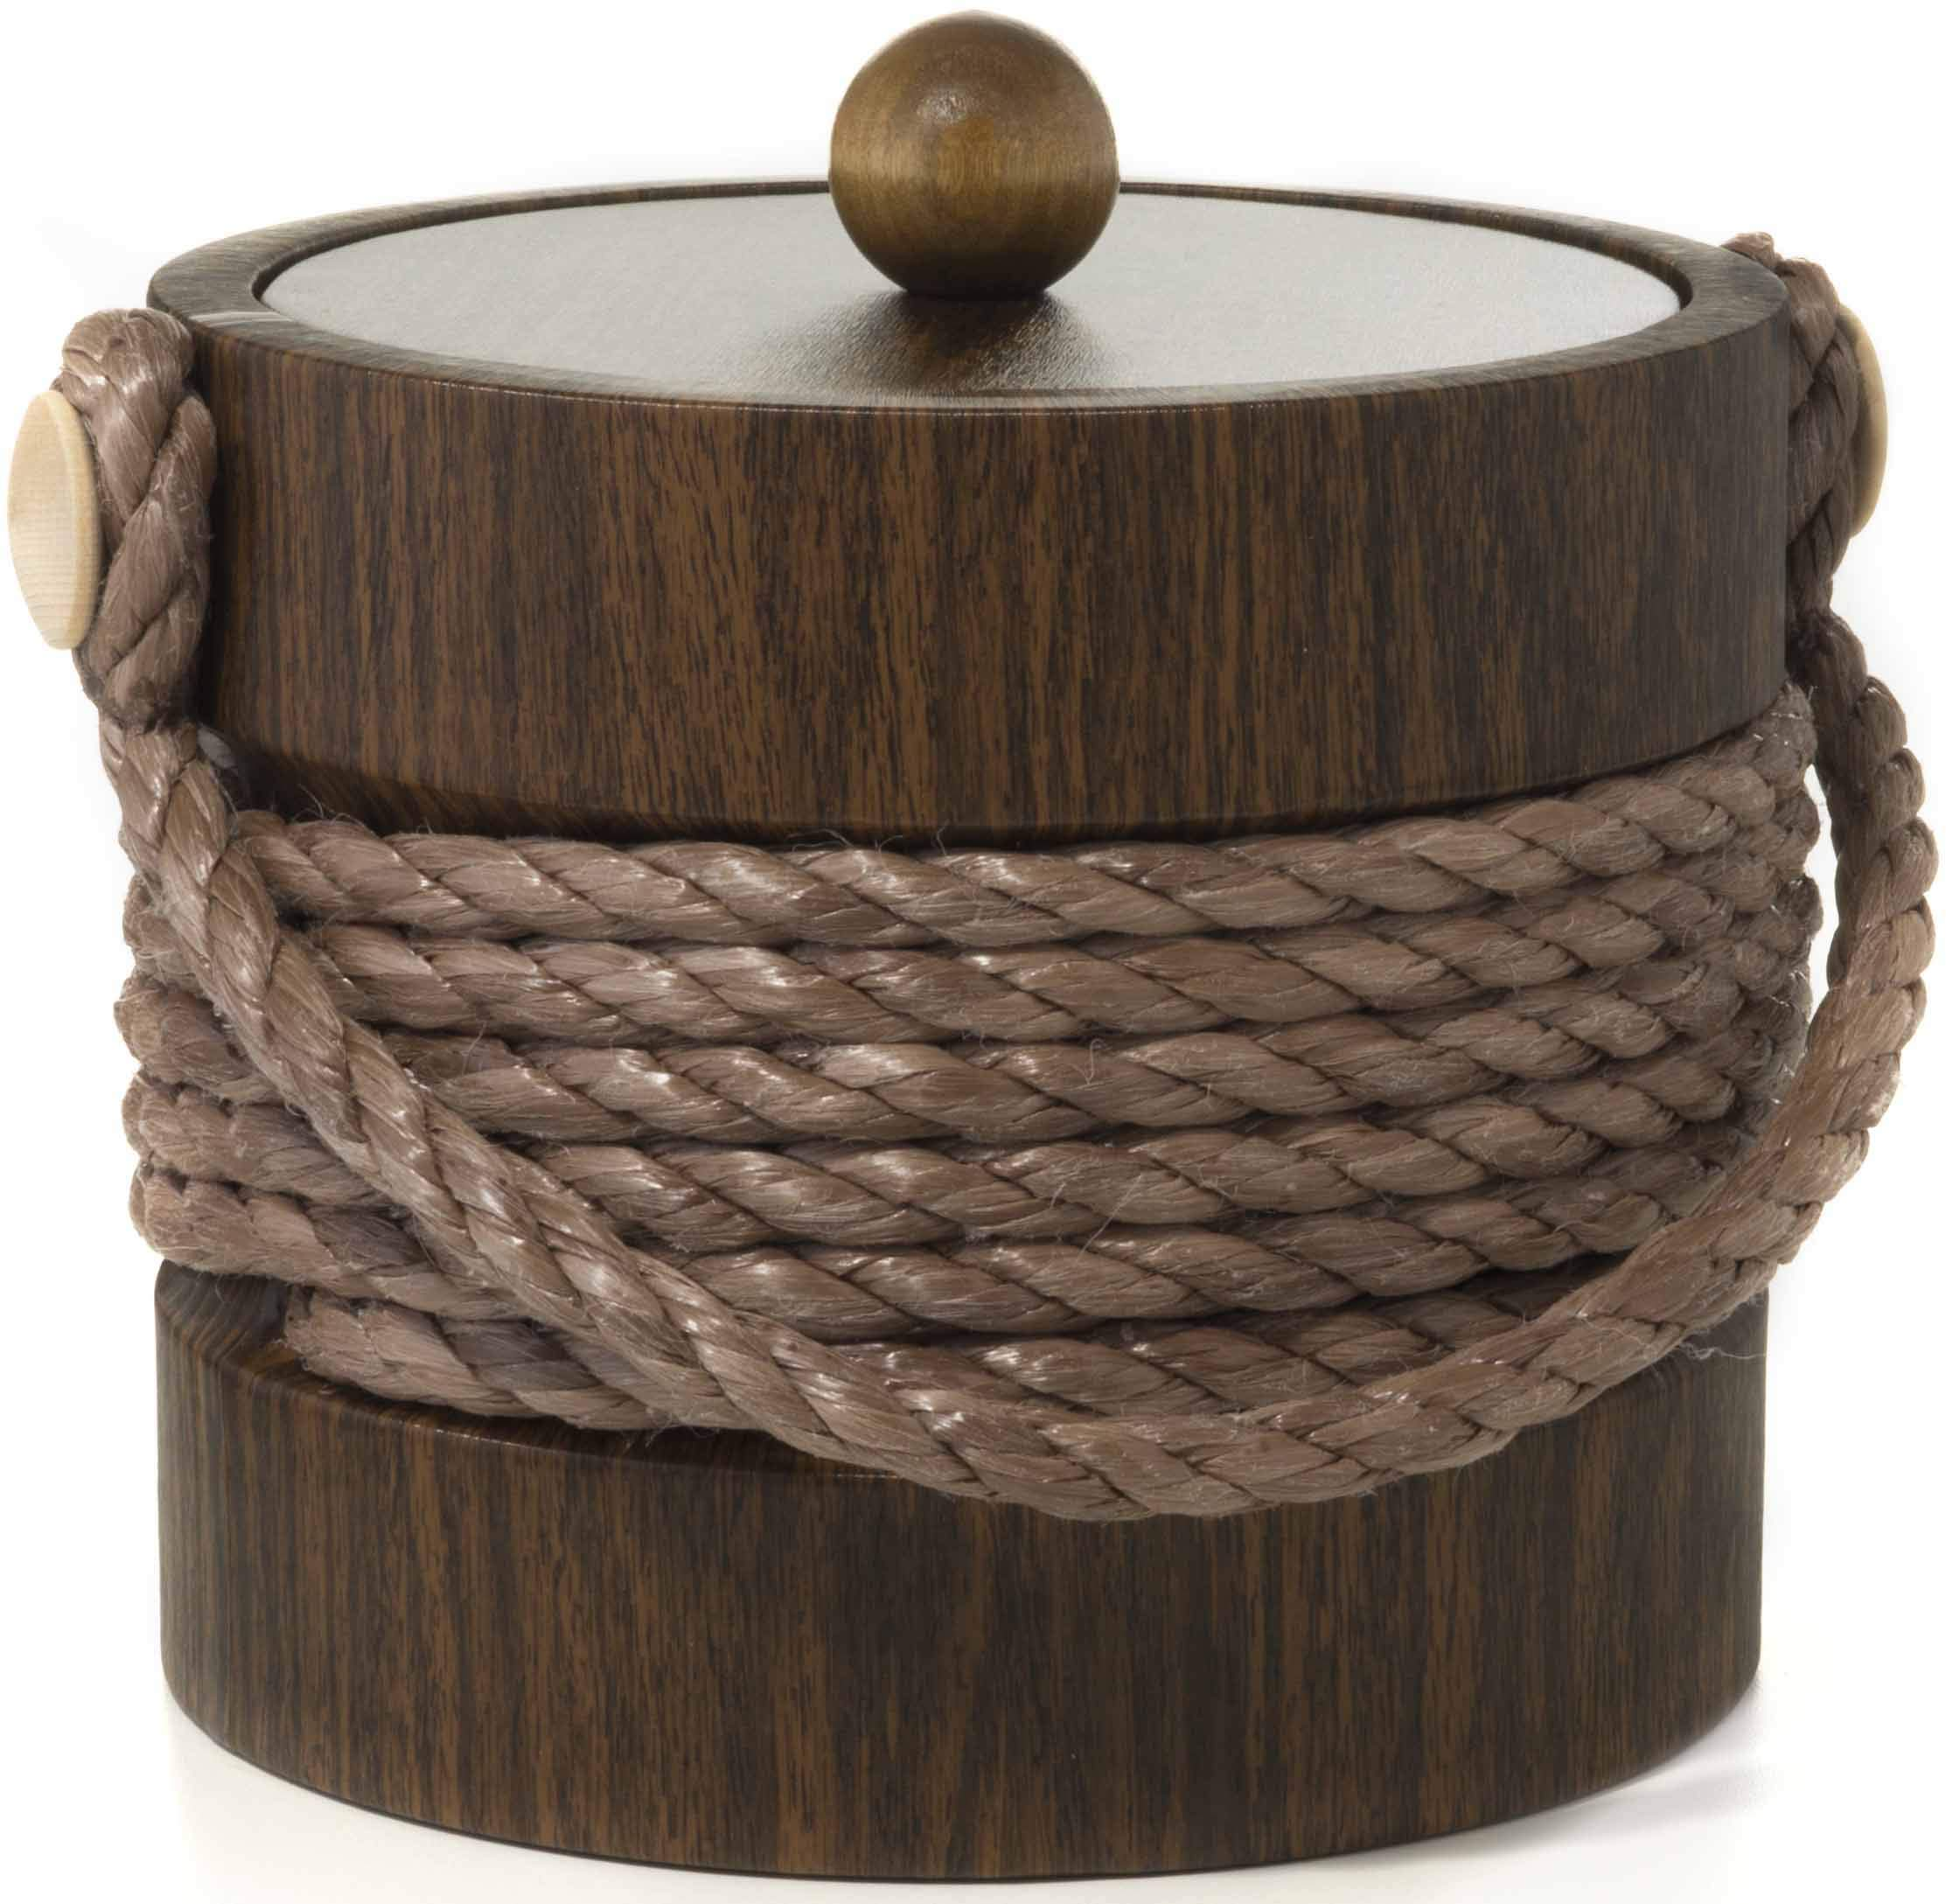 Hand Made In USA Walnut Grain With Rope Handle Double Walled 3-Quart Insulated Ice Bucket With Bonus Ice Tongs by Mr. Ice Bucket By Stephanie Imports (Image #2)